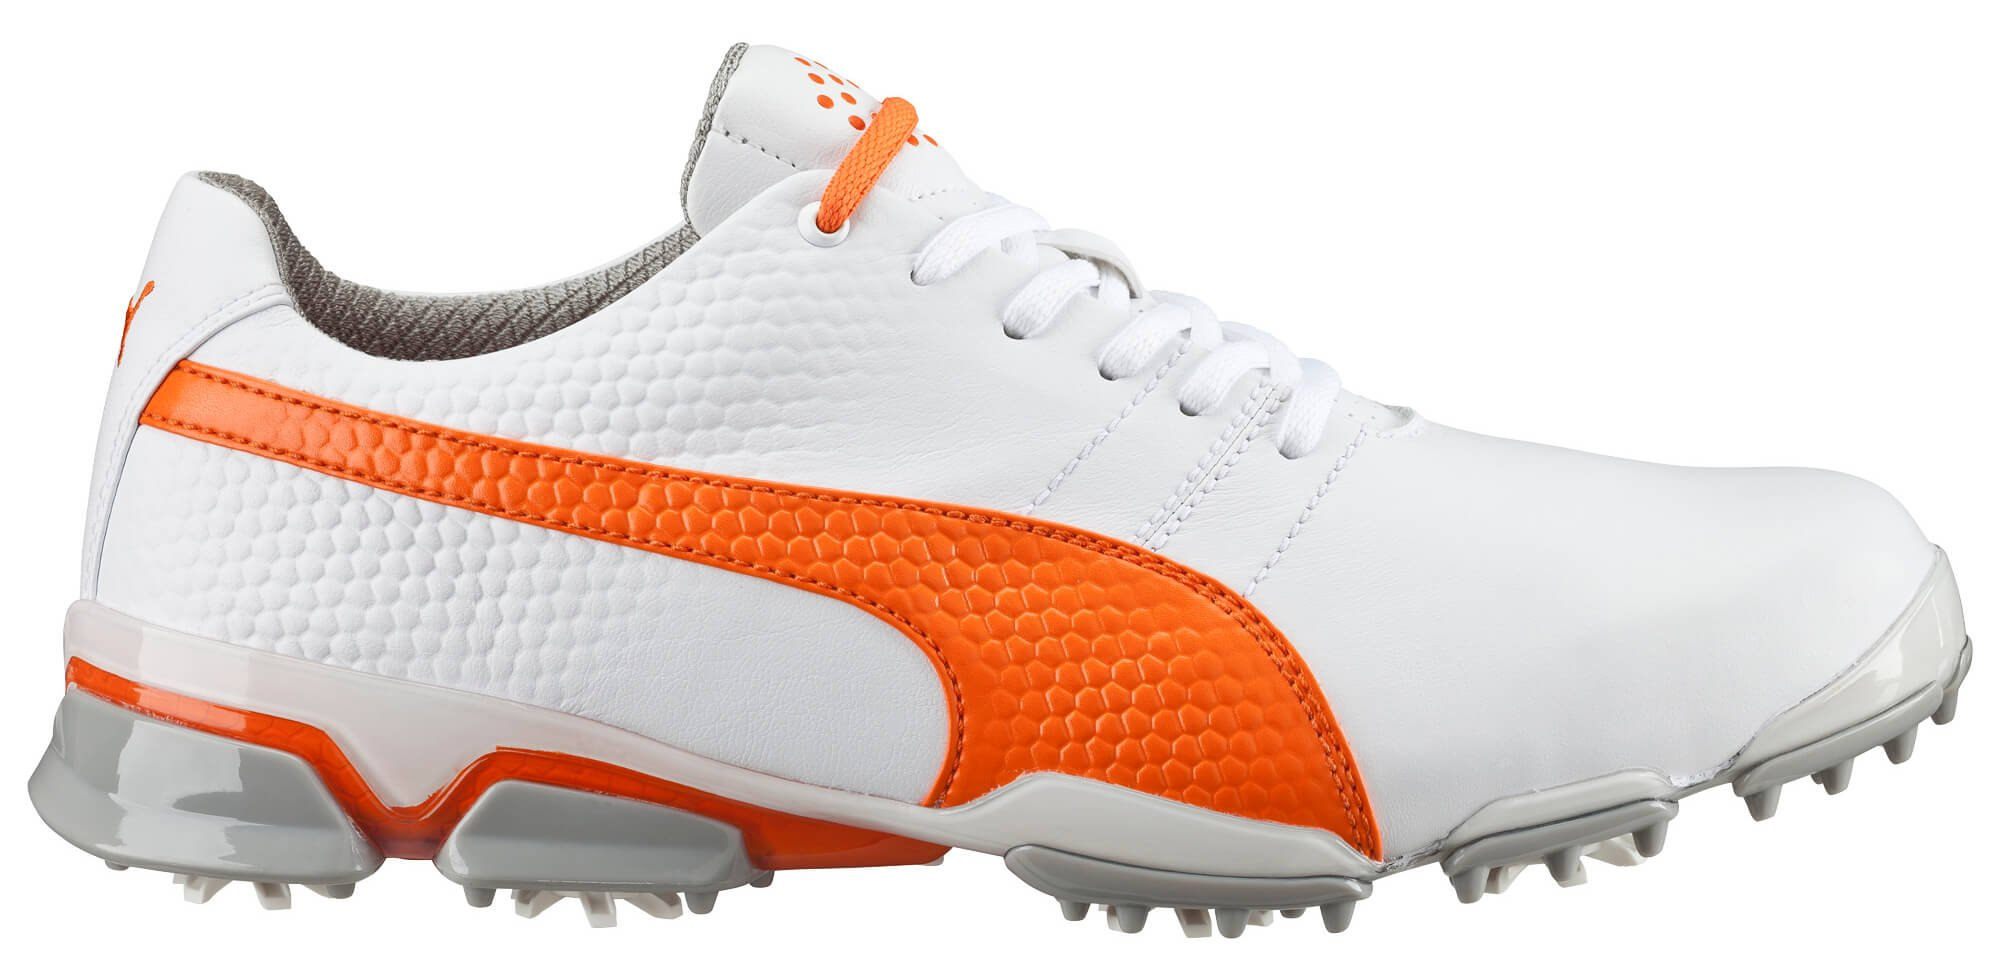 PUMA Men's Titantour Ignite Golf Shoe, White/Vibrant Orange, 10.5 M US by PUMA